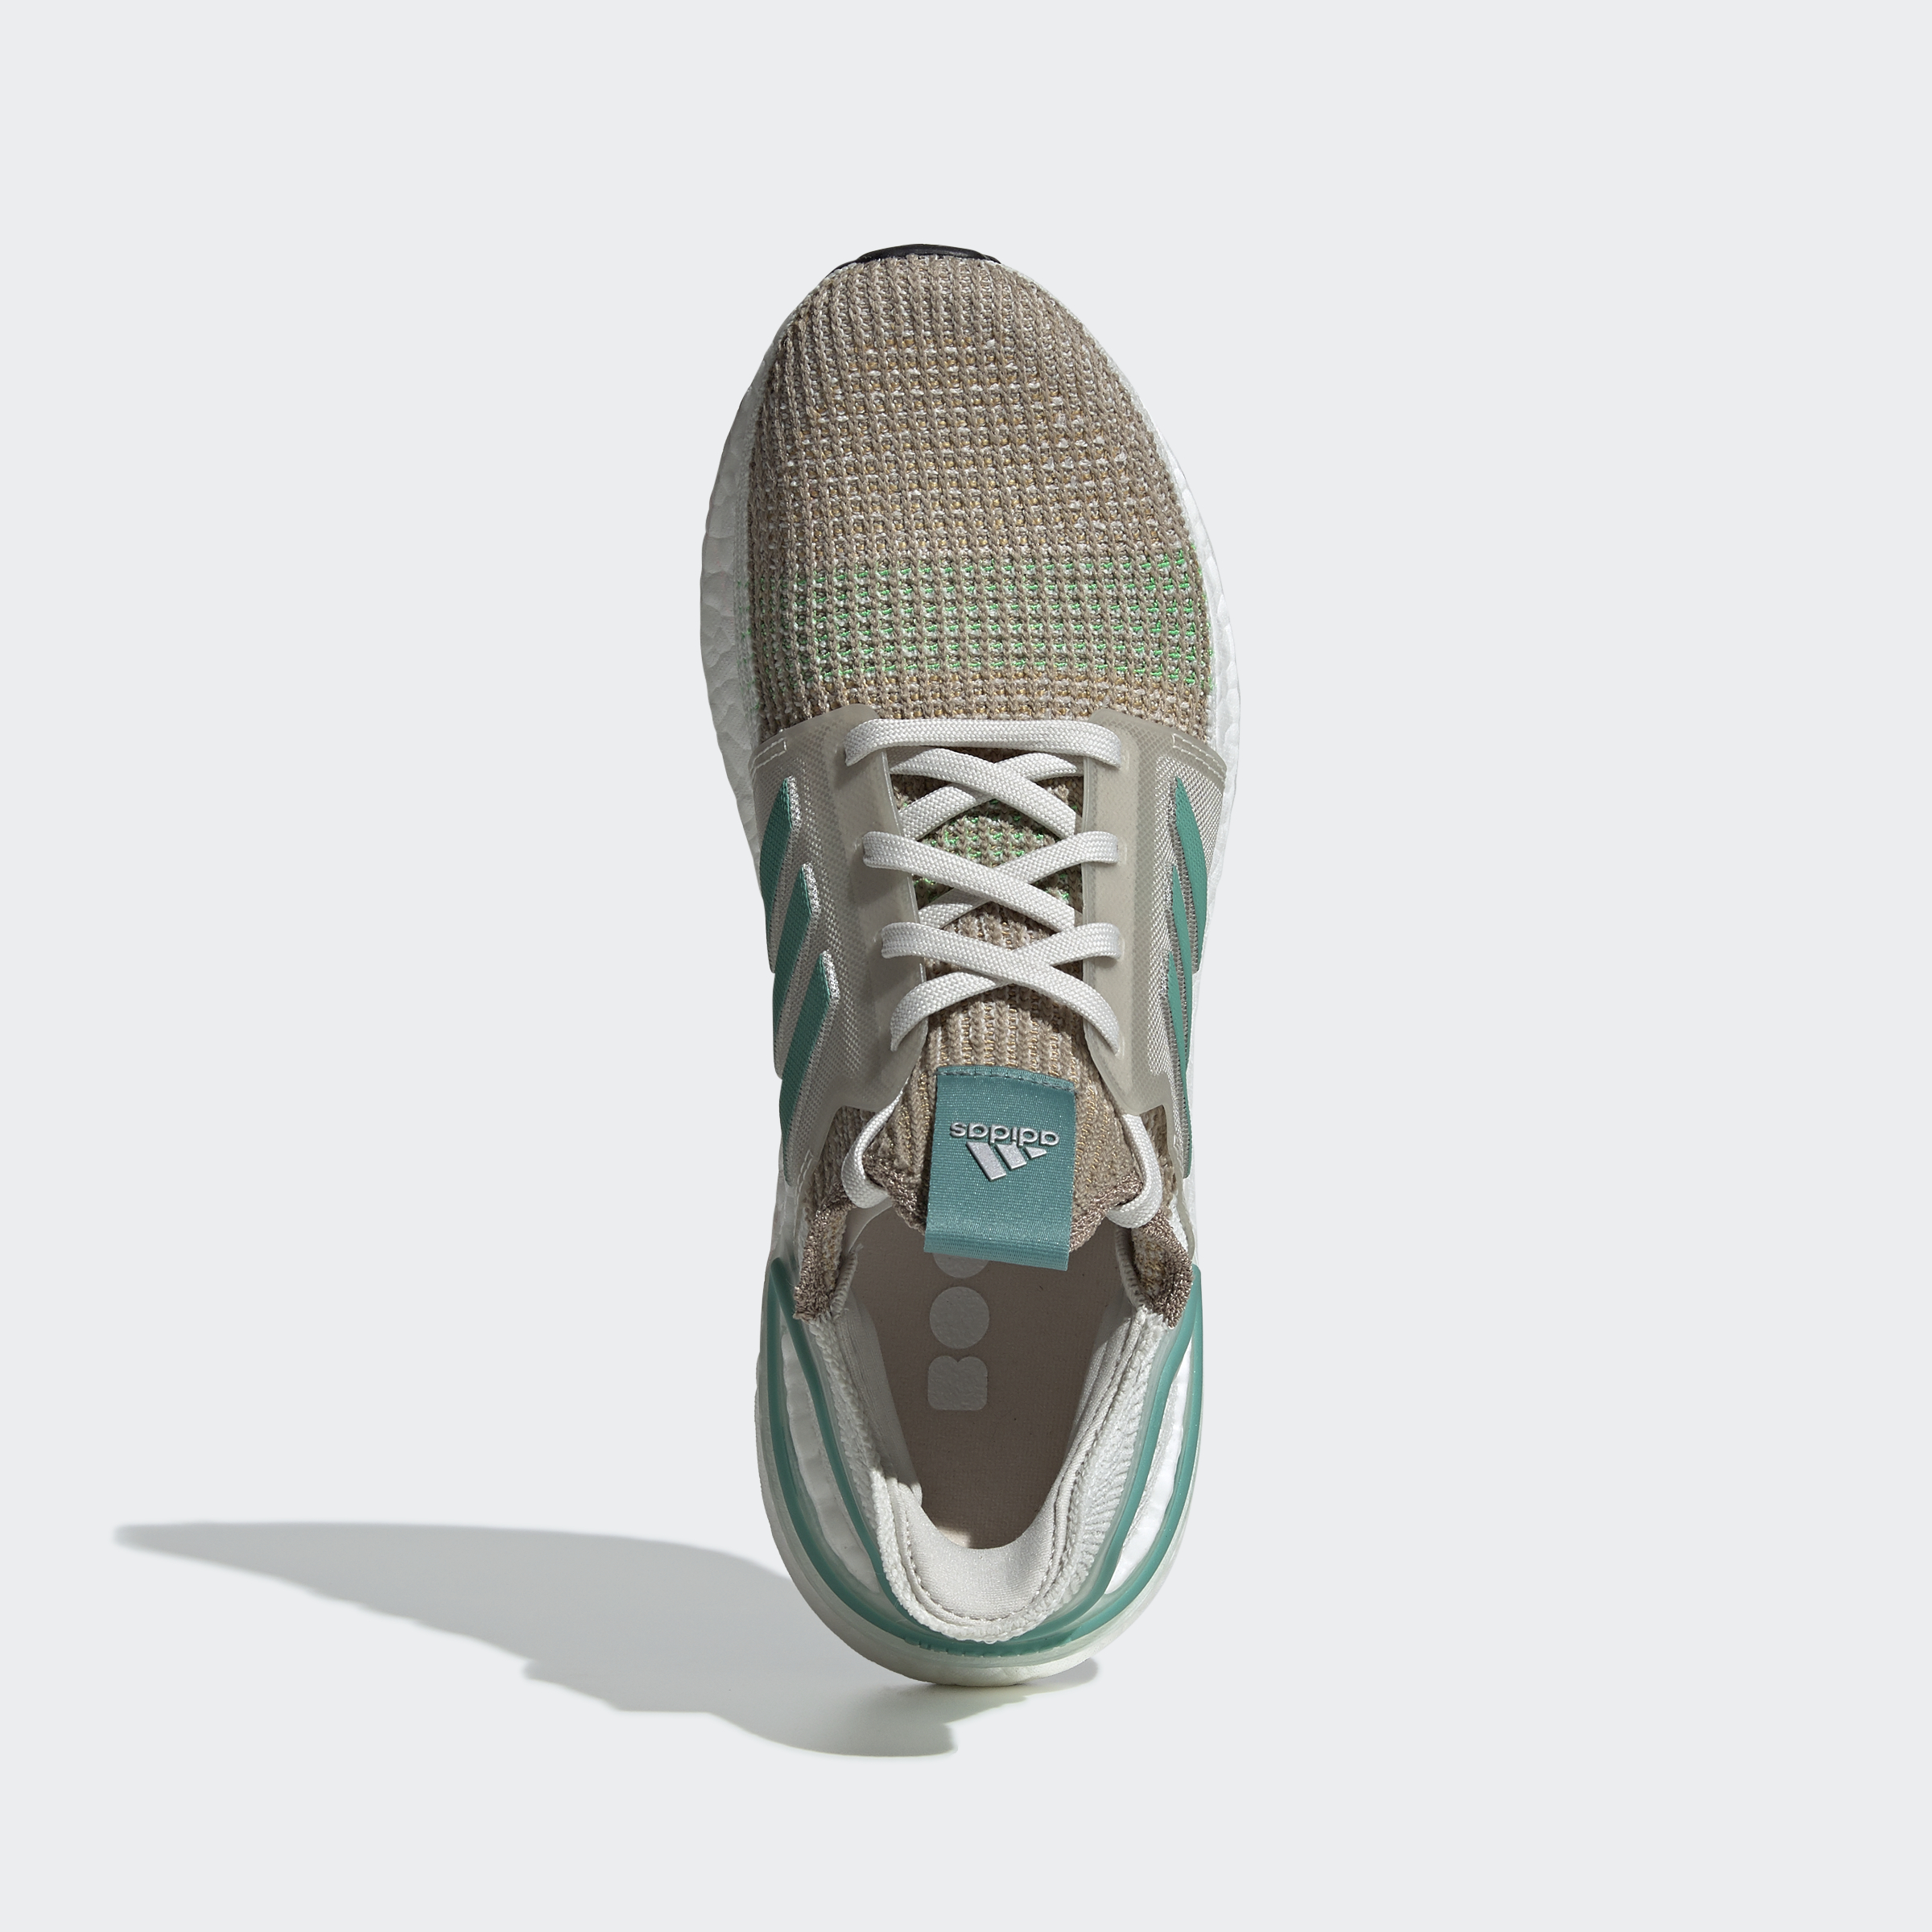 adidas-Ultraboost-19-Shoes-Athletic-amp-Sneakers thumbnail 25